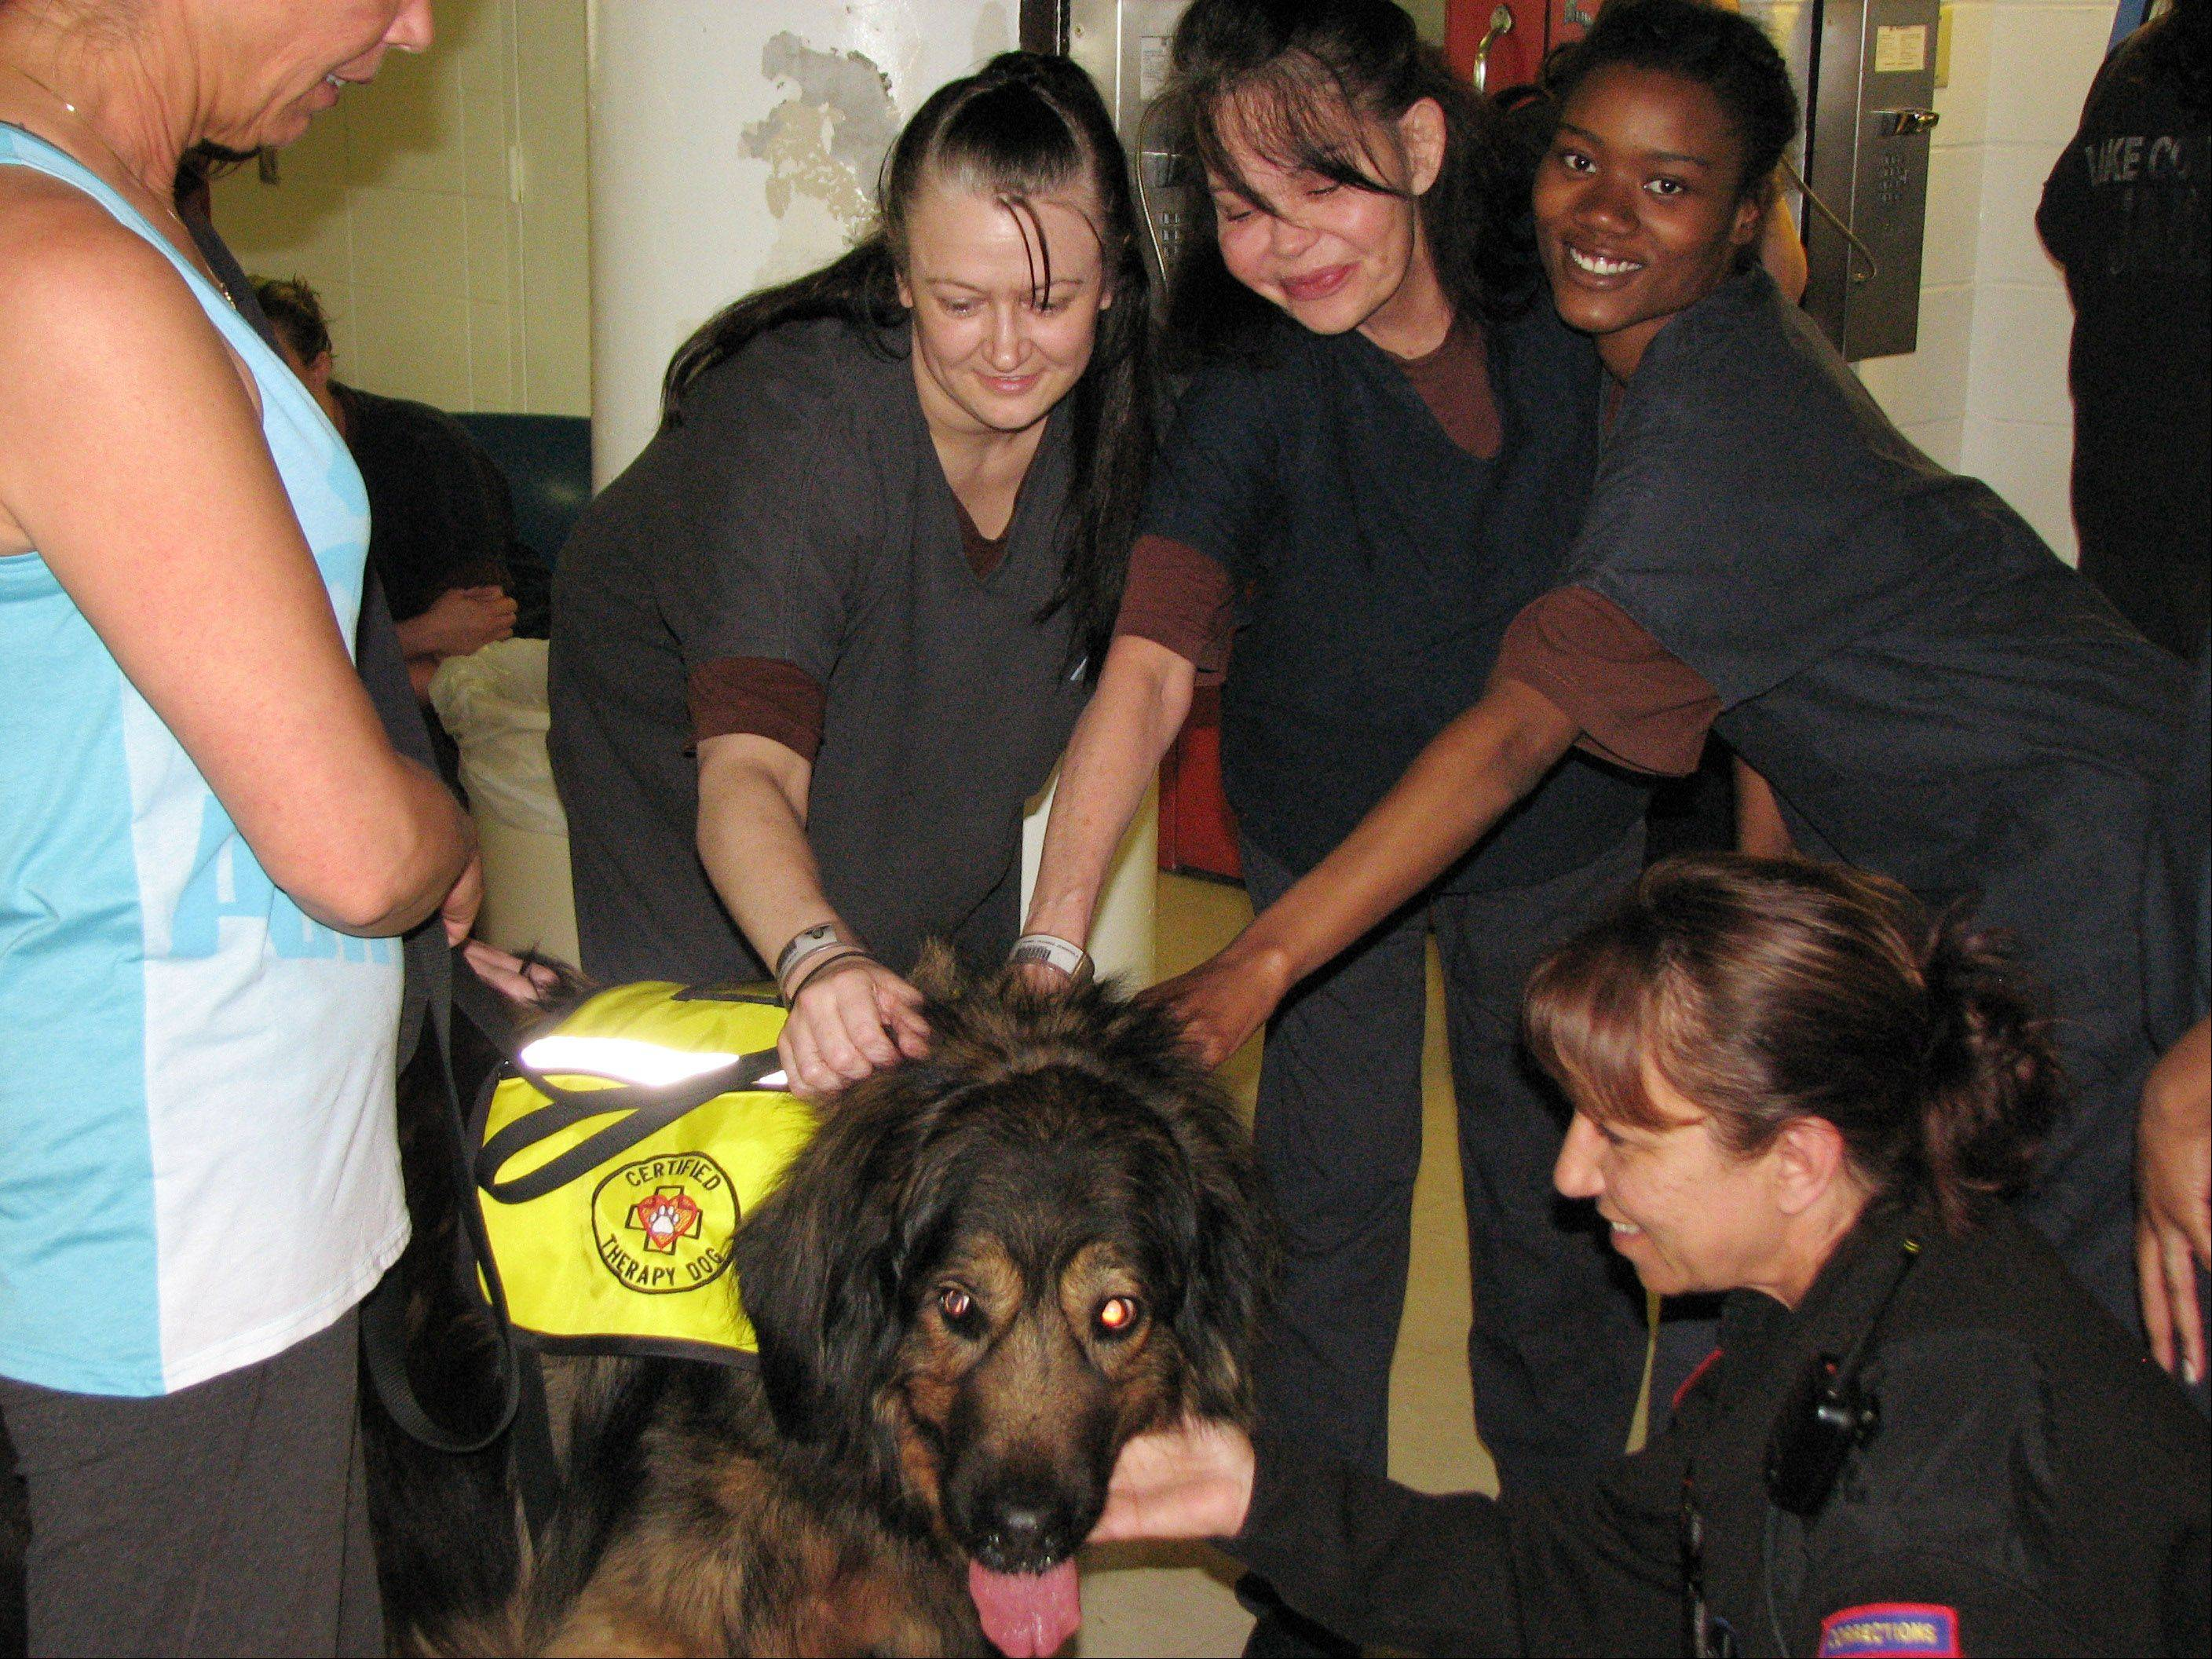 Courtesy of Lake County Sheriff�s OfficeSusan Knaack's therapy dog Kubla Khan gets some attention at the Lake County Community Based Corrections Center (CBCC).